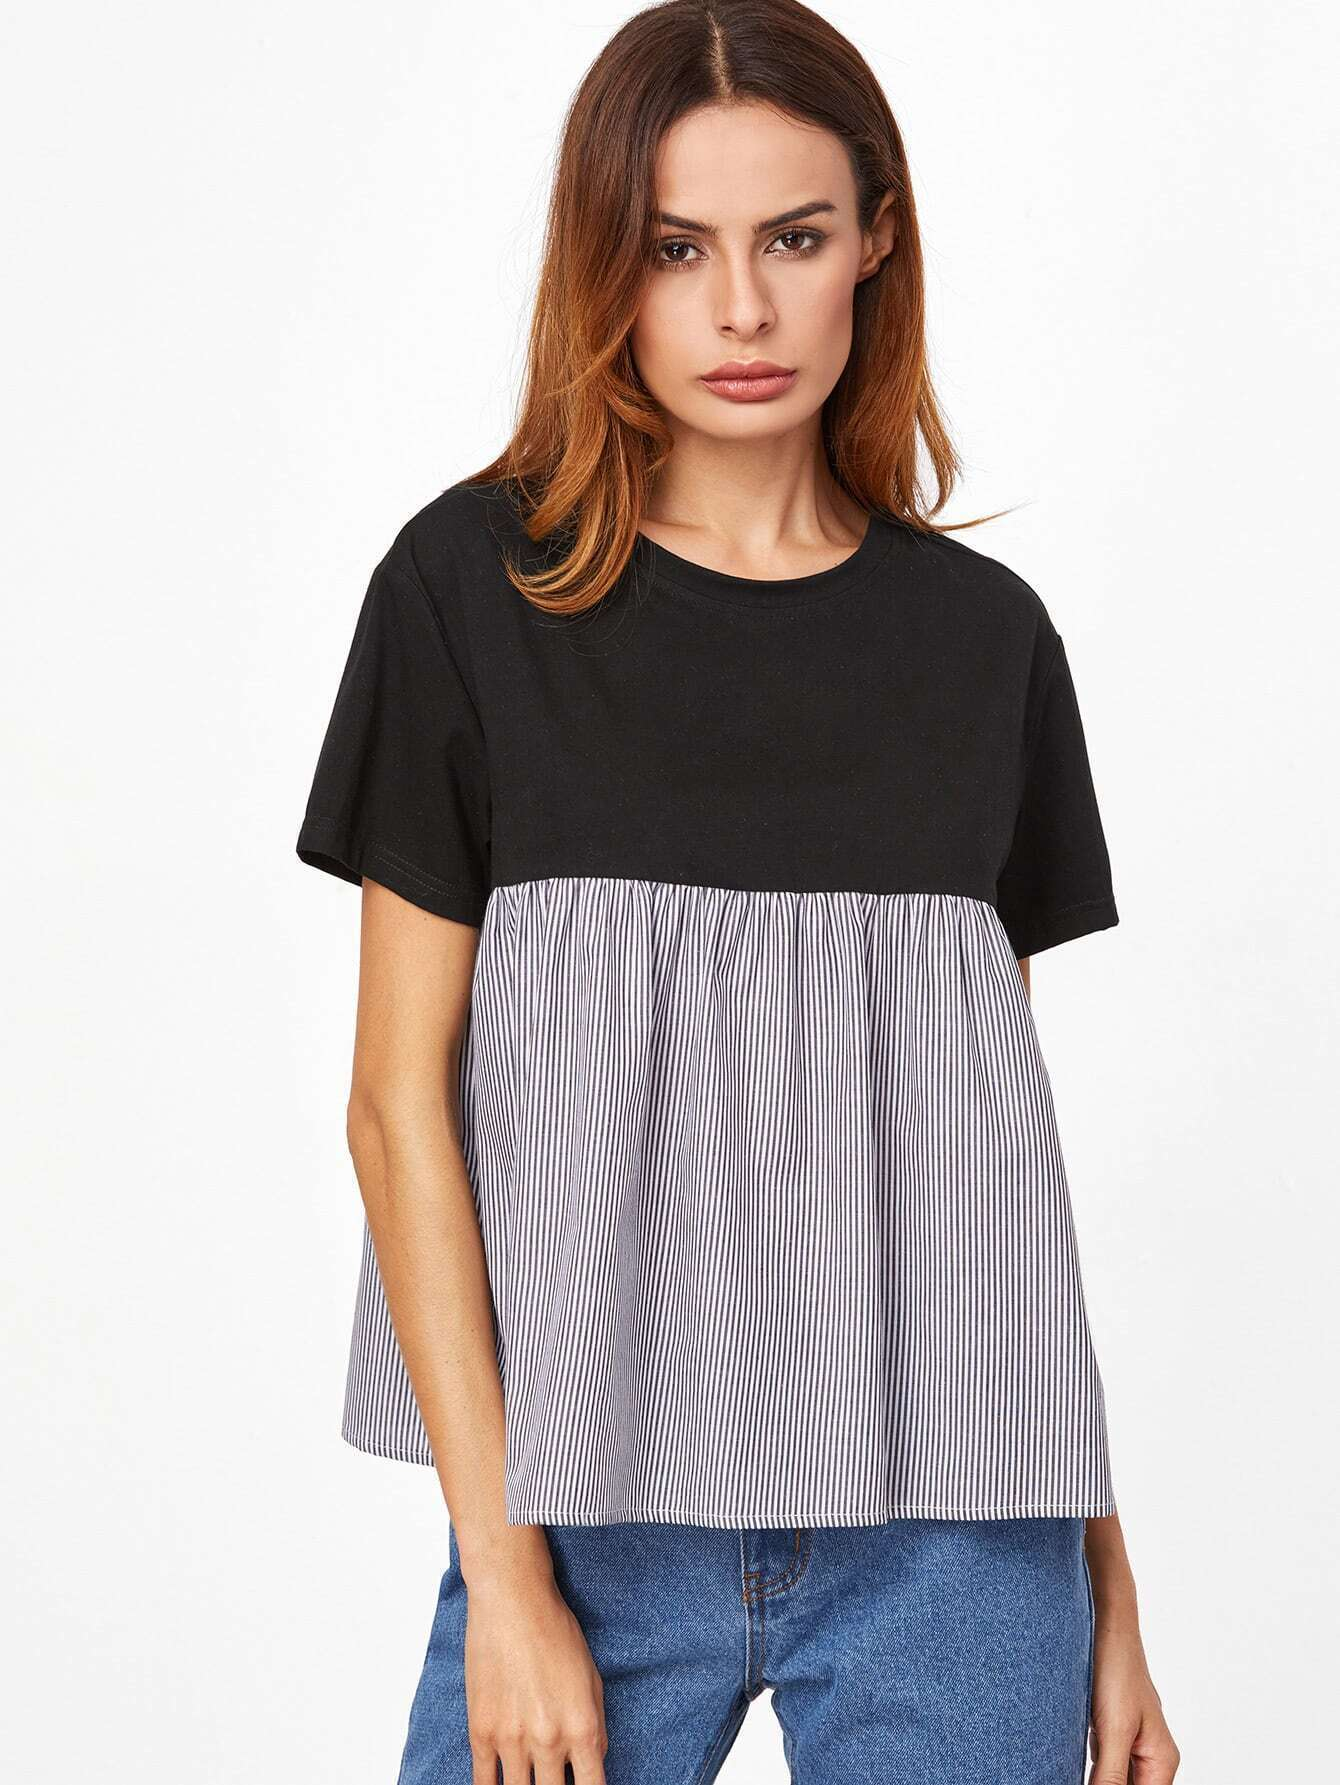 Contrast Striped Trim Babydoll T-shirt